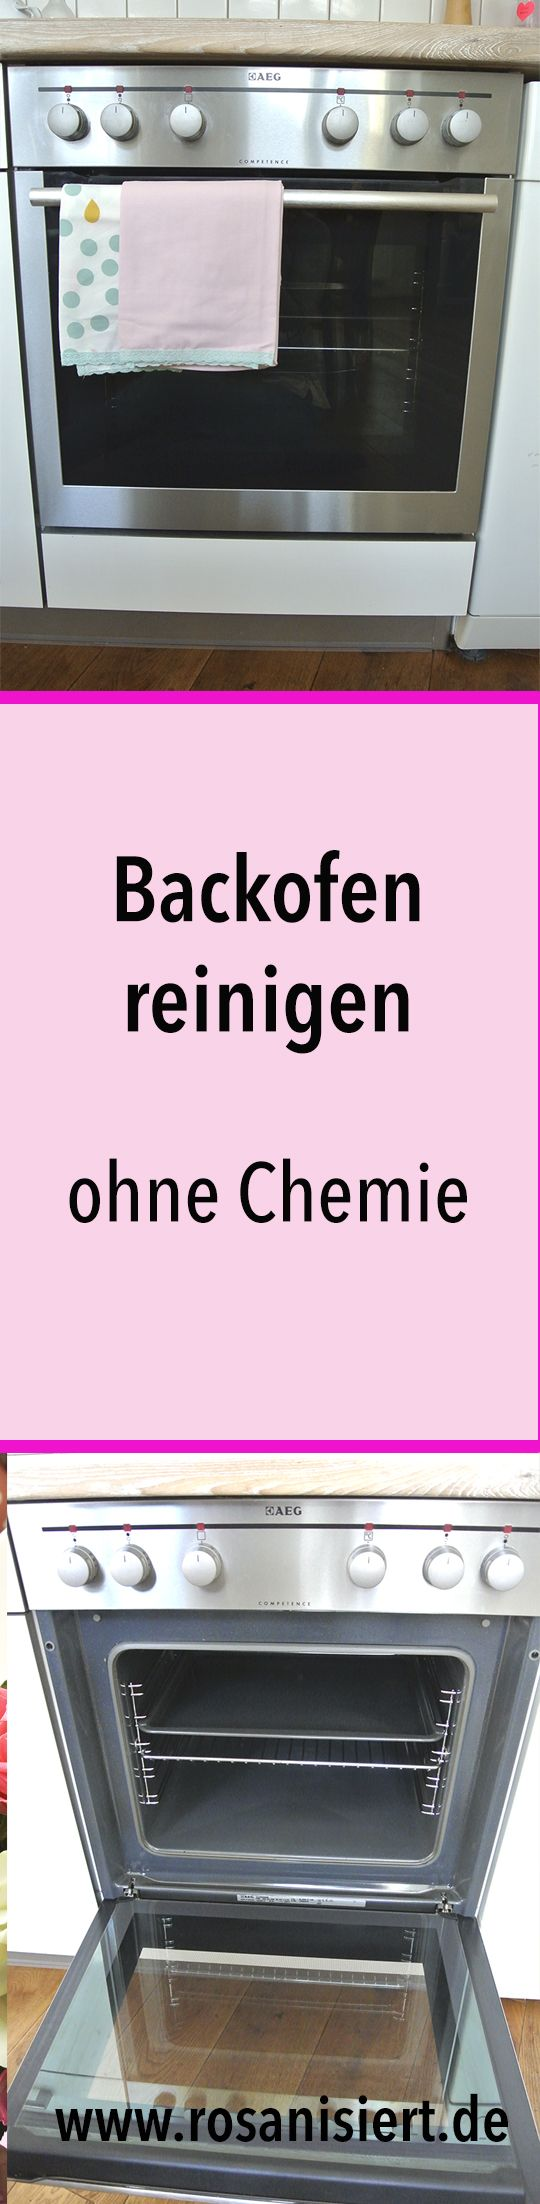 backofen reinigen ohne chemie so wird dein ofen strahlend sauber putzen pinterest. Black Bedroom Furniture Sets. Home Design Ideas